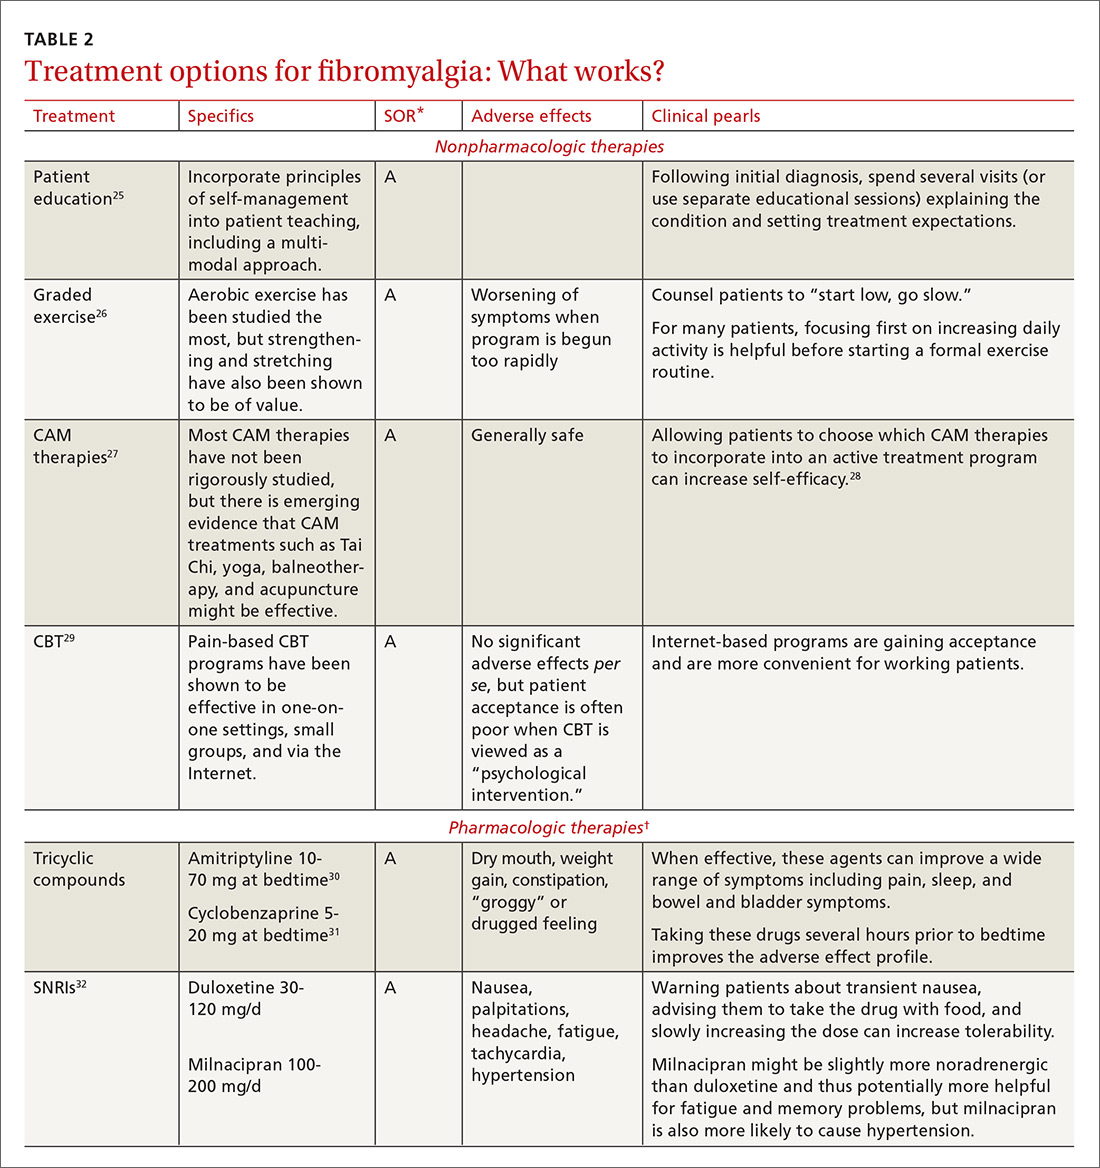 Treatment options for fibromyalgia: What works? image